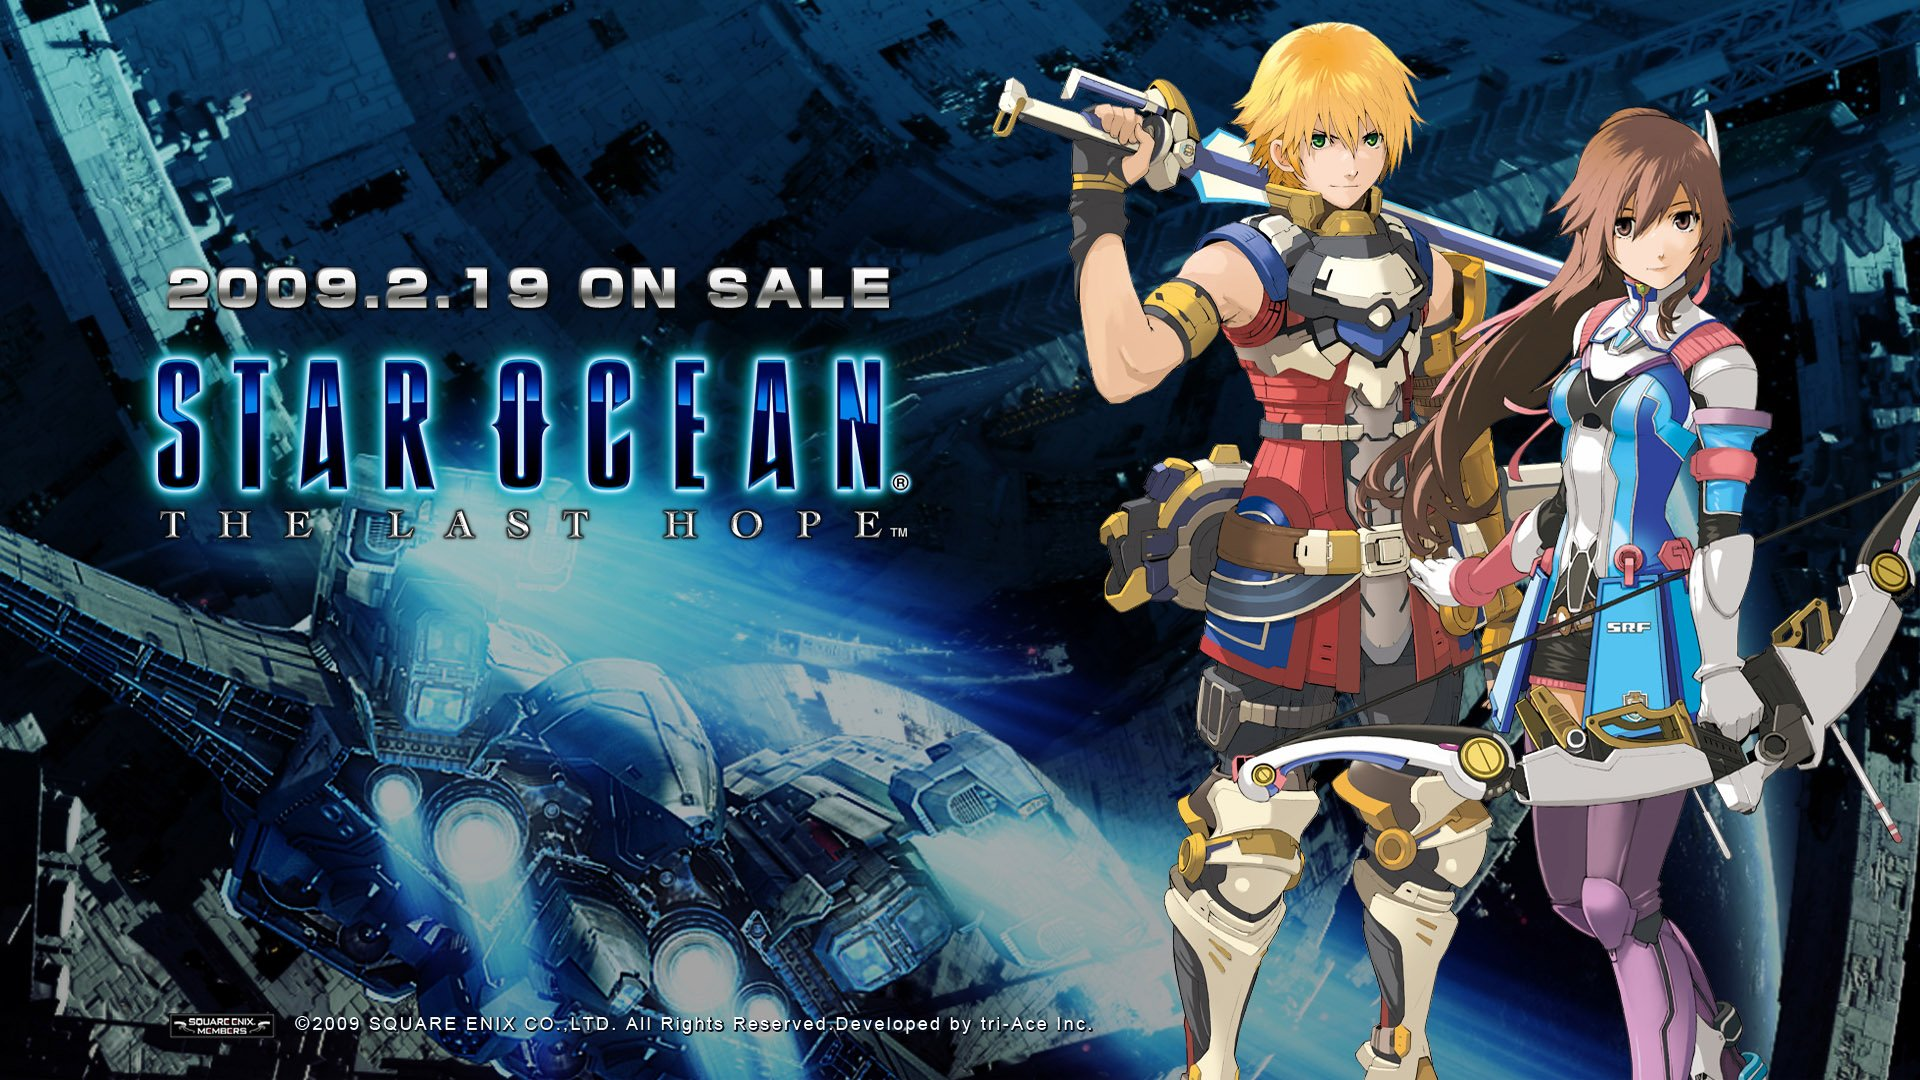 STAR-OCEAN action rpg fantasy anime sci-fi star ocean (54 ...